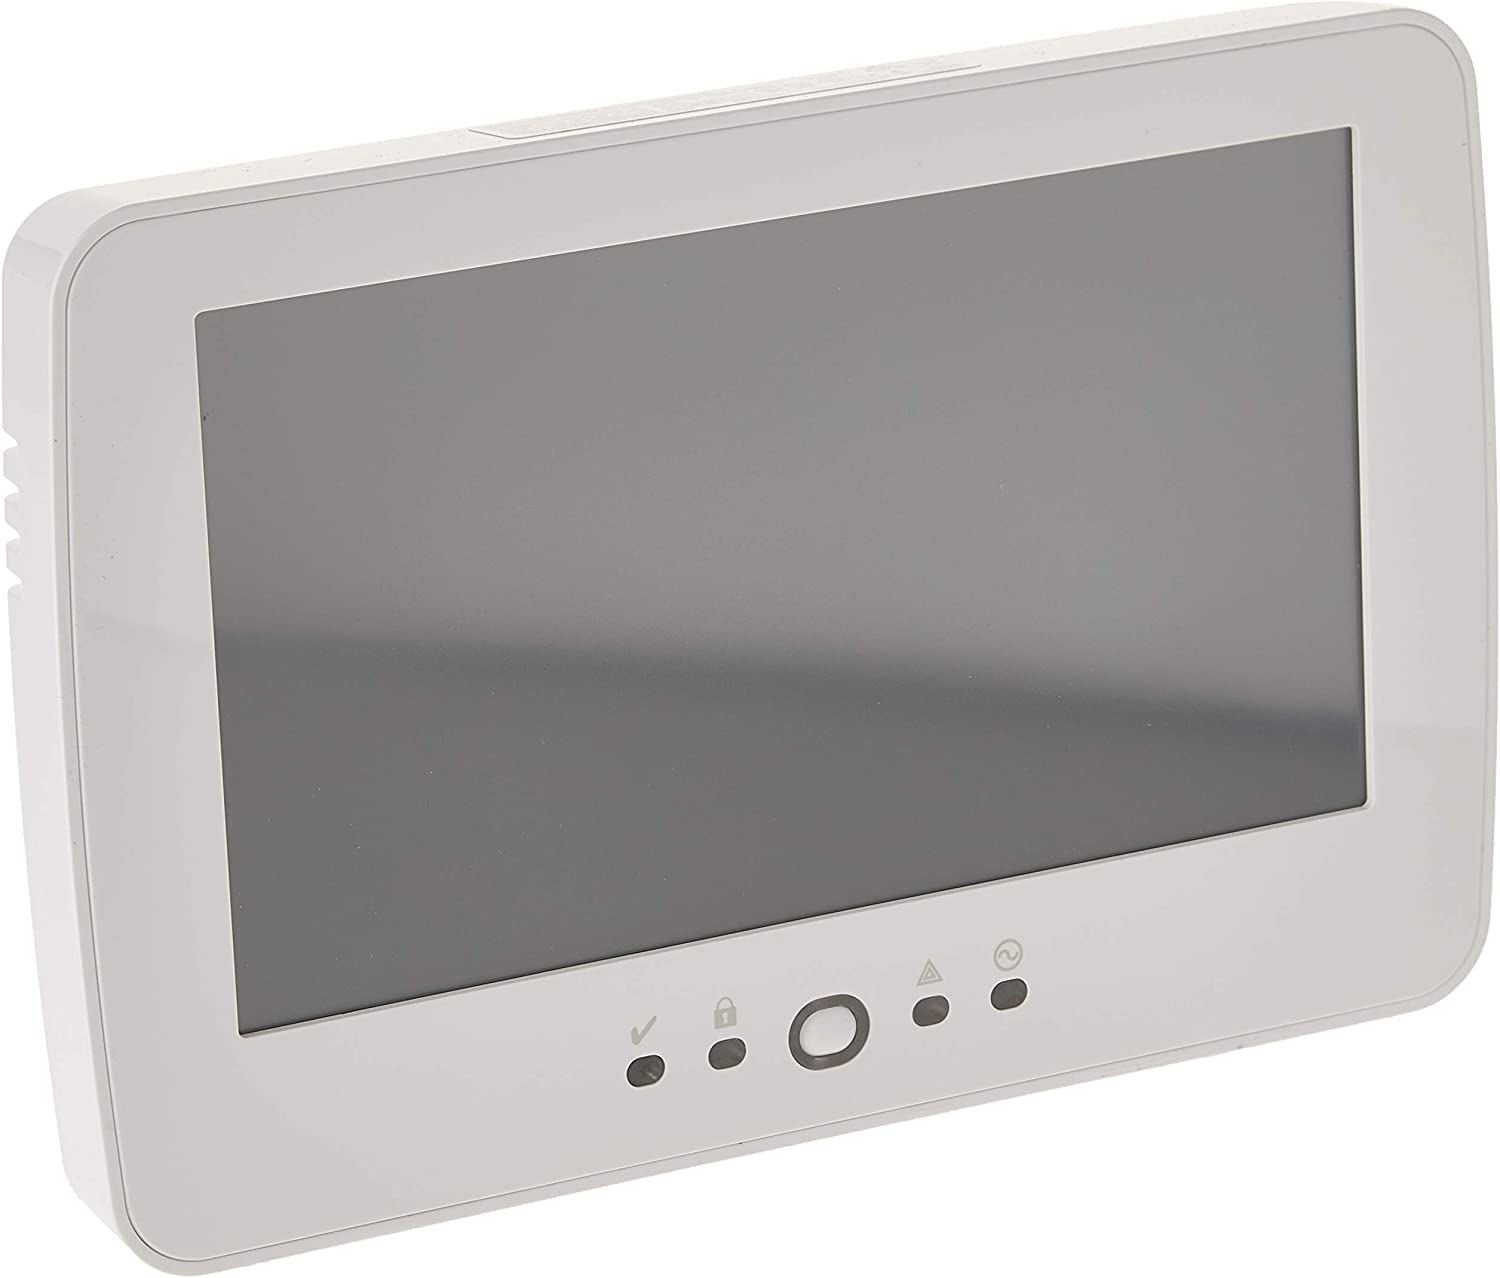 DSC PTK5507 PowerSeries TouchScreen Security Interface, 7 Inch display